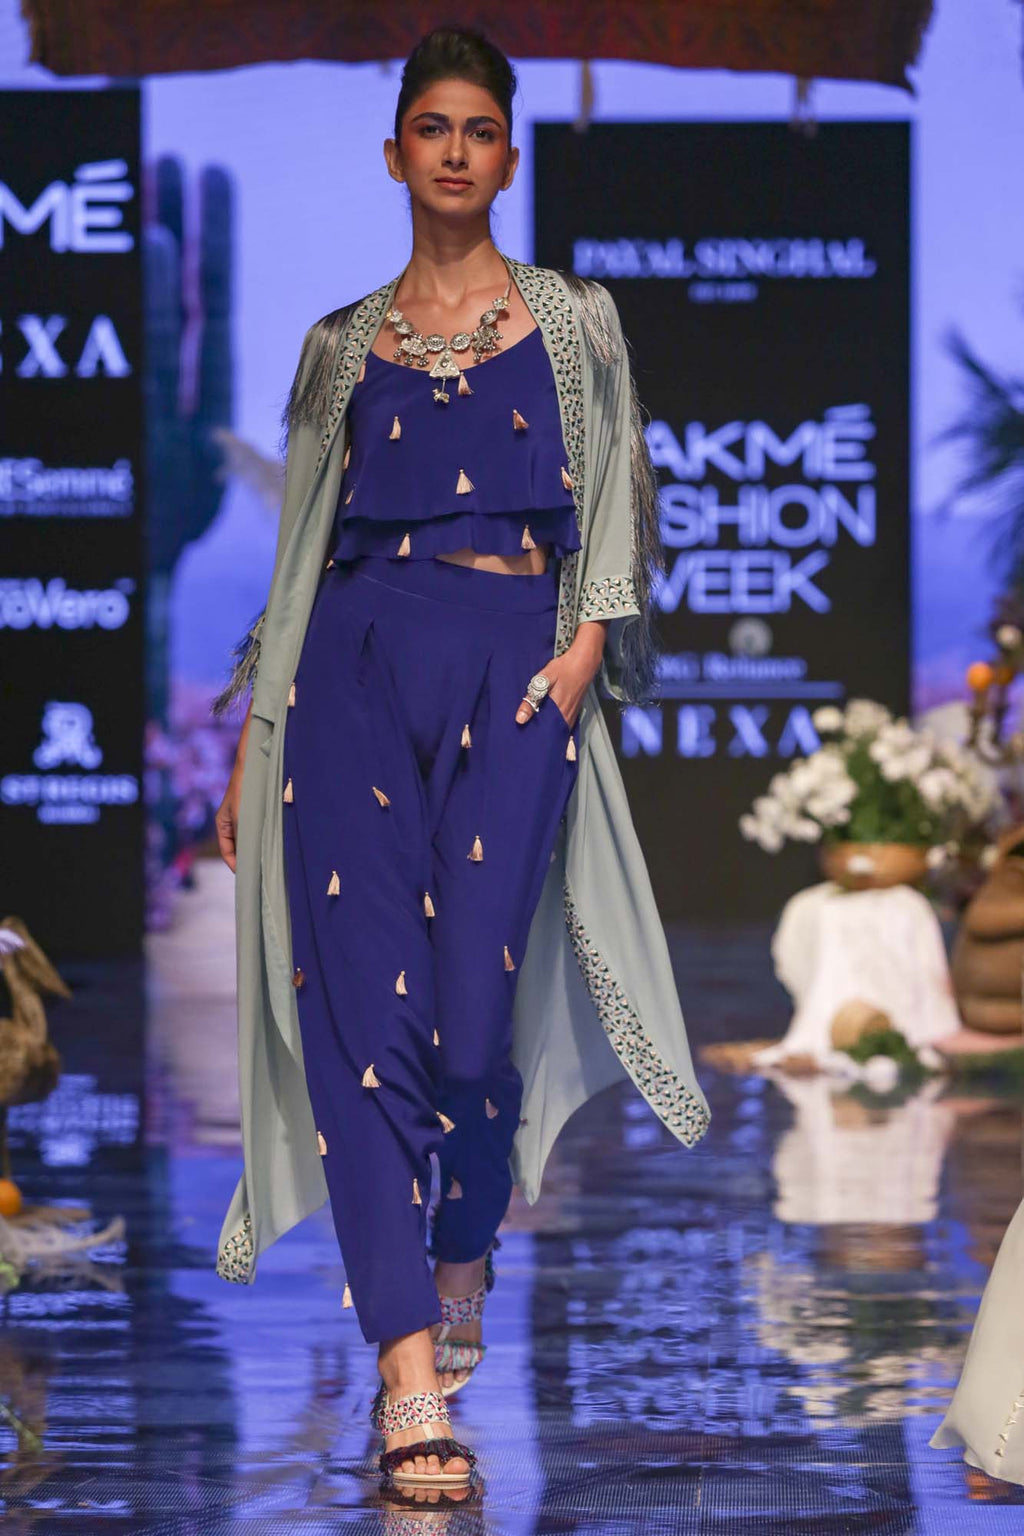 Periwinkle Blue Colour Georgette Jacket with Cobalt Blue Colour Crepe Layered Top with Low Crotch Pant - Riviera Closet